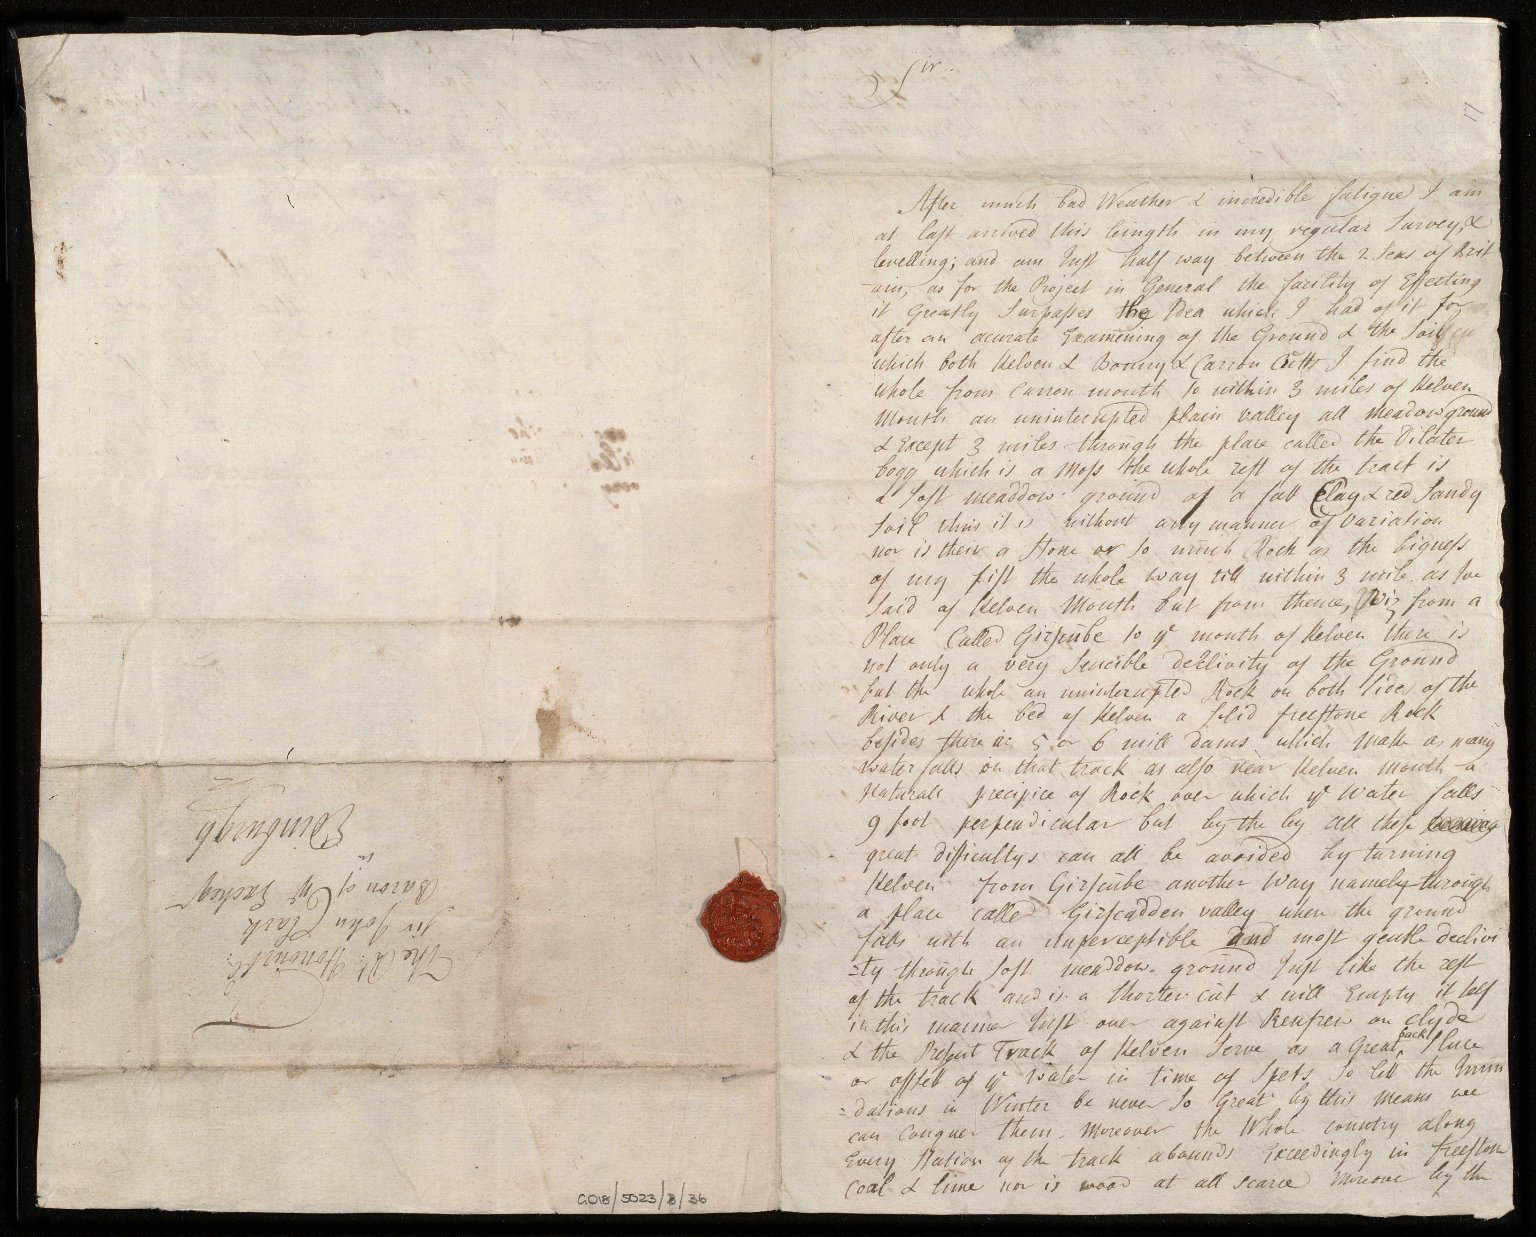 [Letter from Alexander Gordon, Kilsyth, to Sir John Clerk of Penicuik, concerning his survey of the Forth-Clyde canal] [1 of 2]